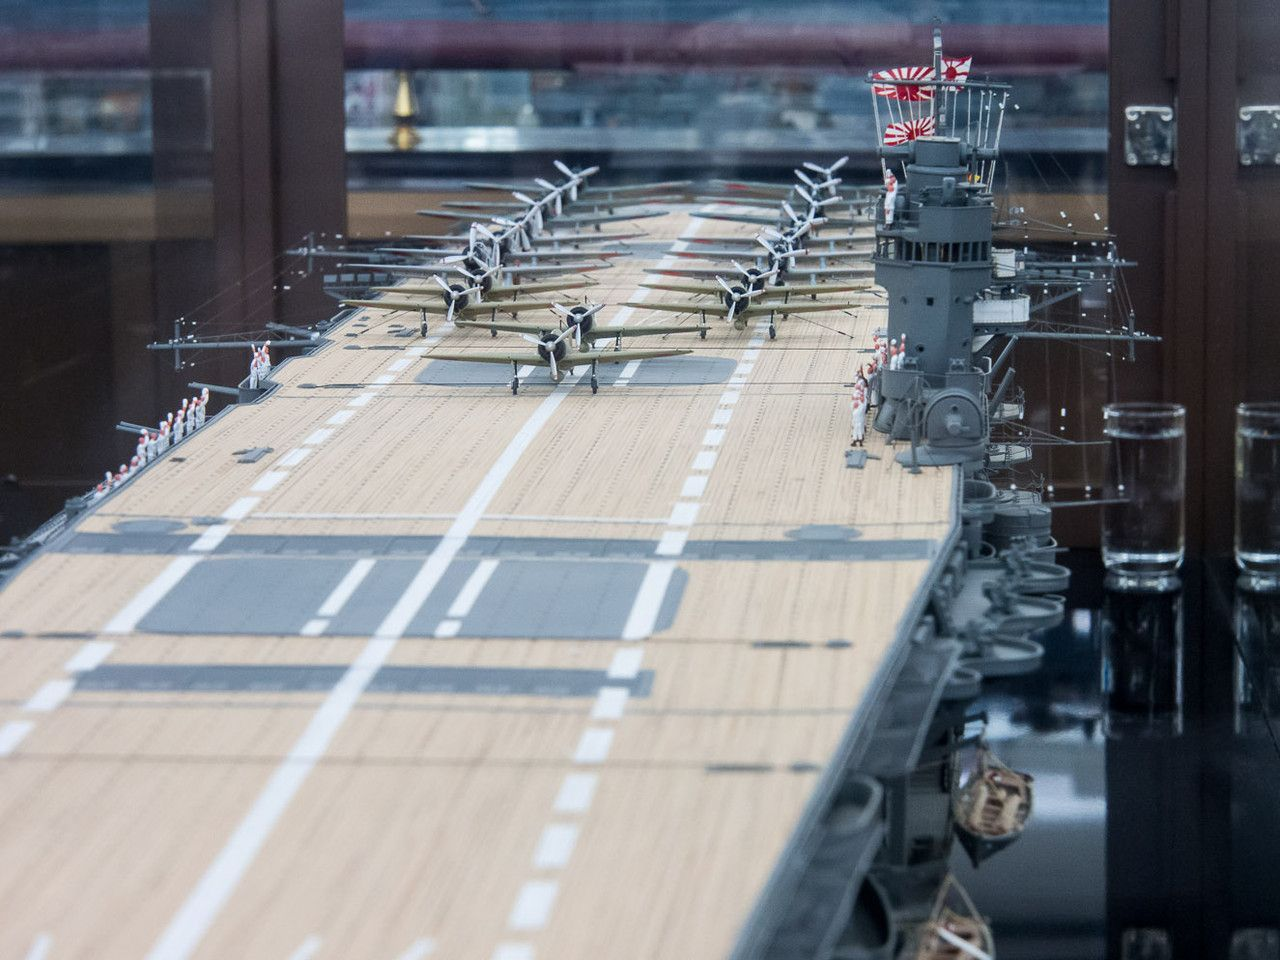 Aircraft carrier models large scale - Japanese Aircraft Carrier Akagi 1 100 Scale